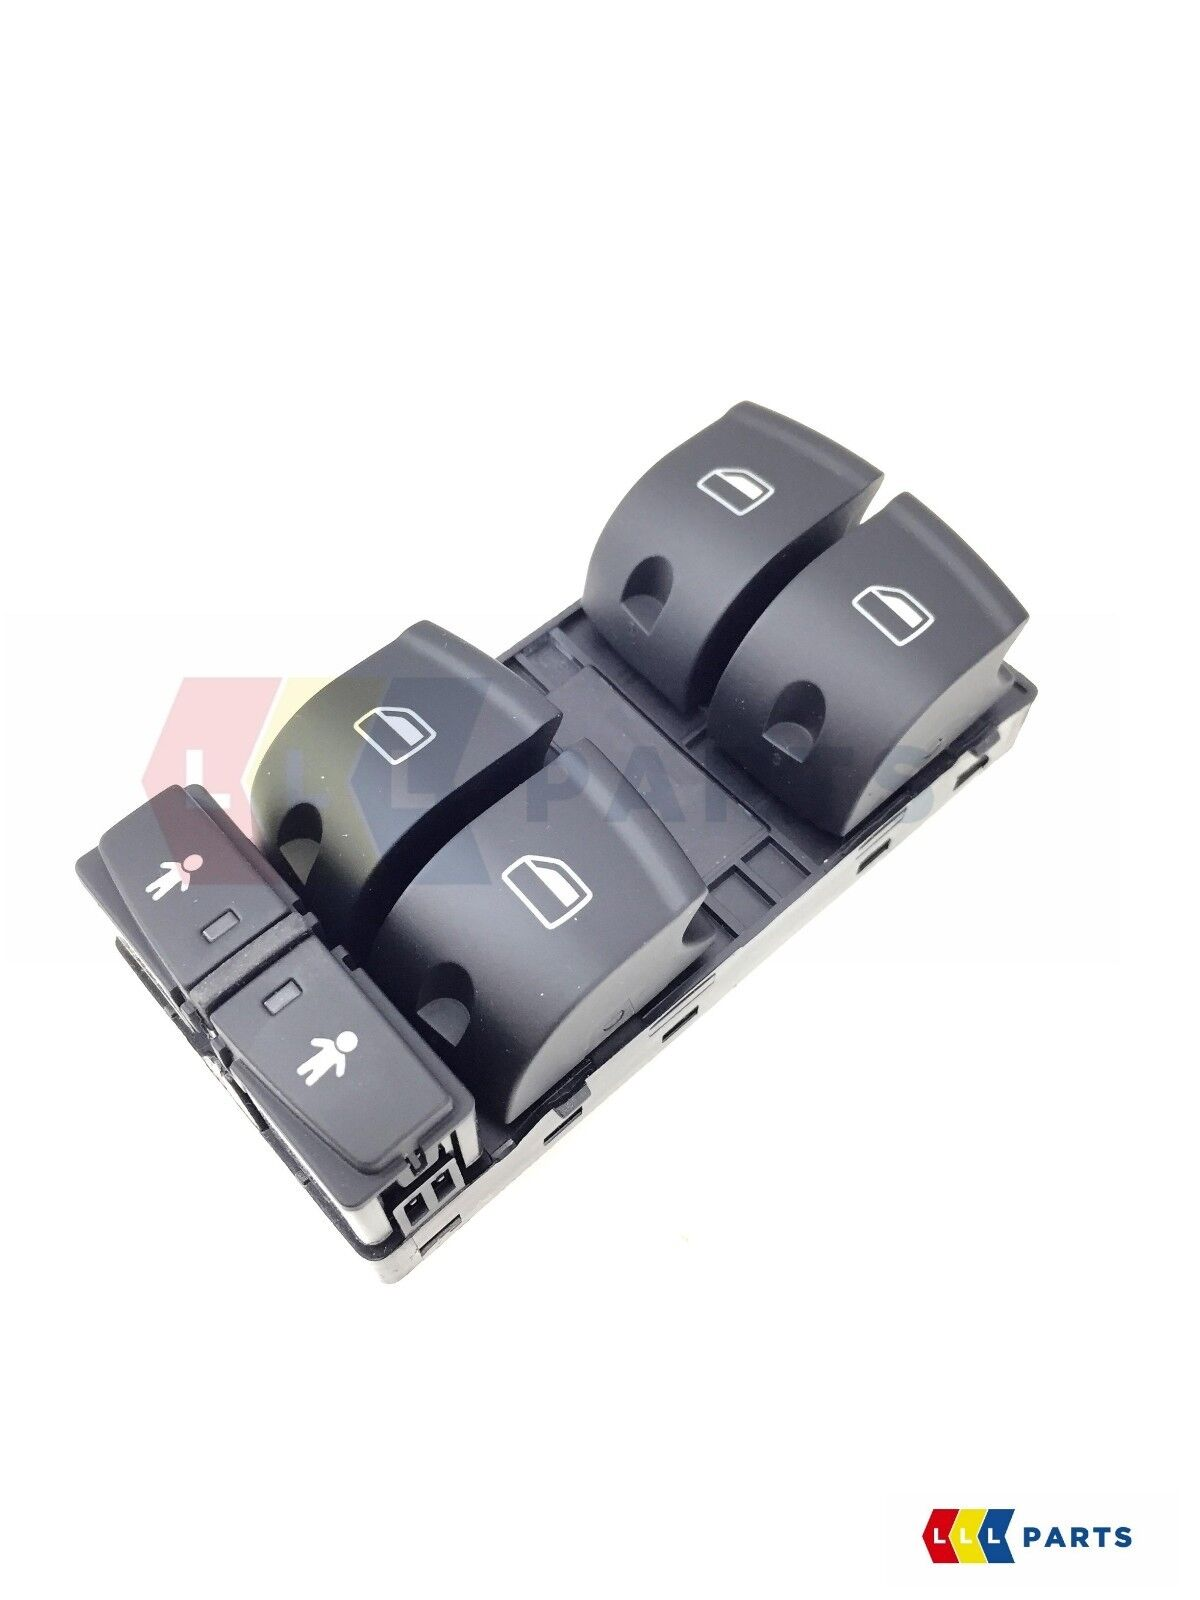 New Genuine Audi A6 C6 04 11 Driver Side Front Electric Window Switch 4f0959851g 163 74 99